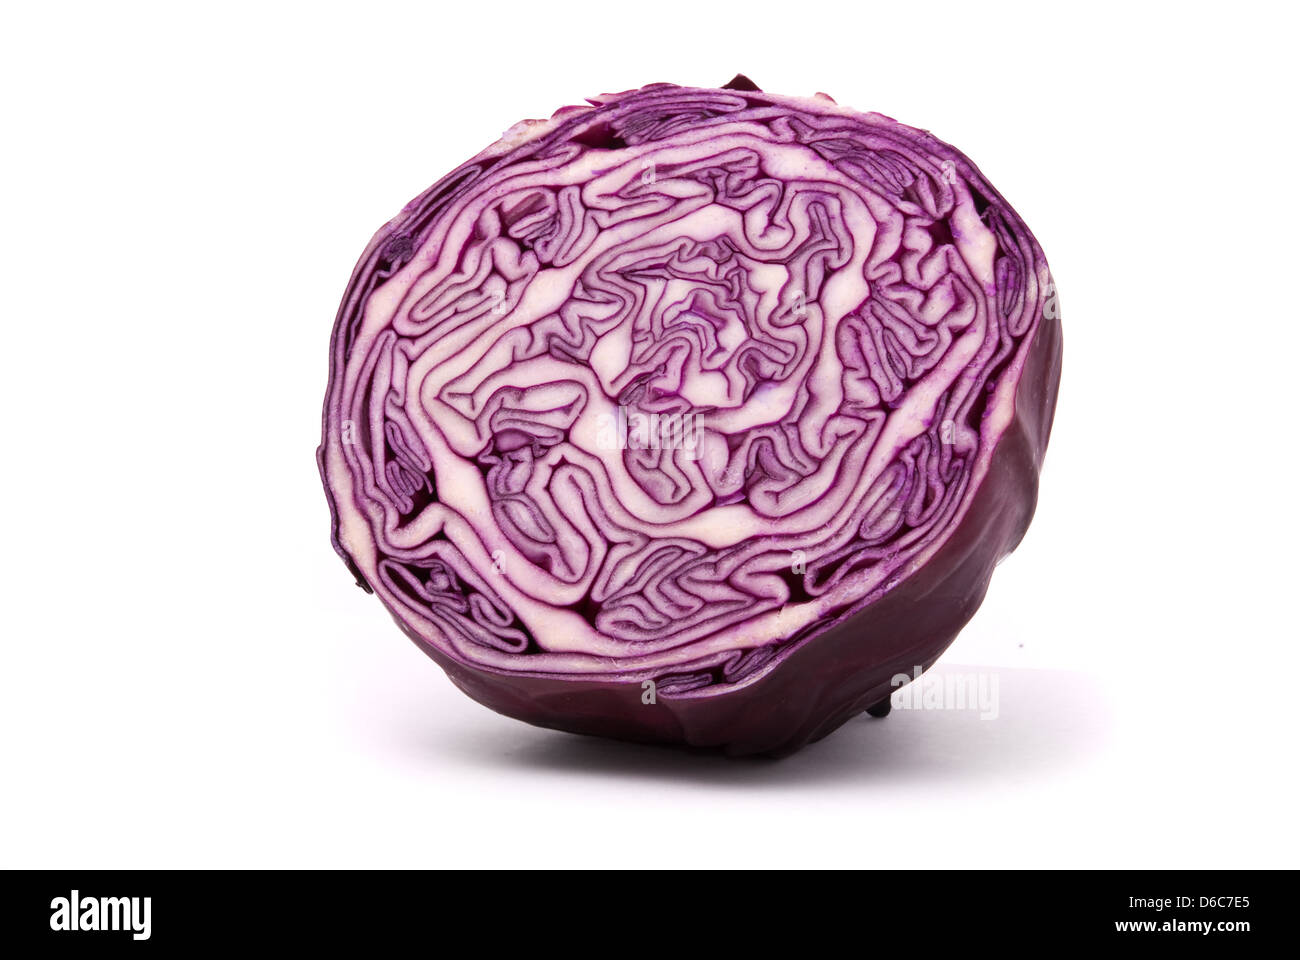 Red cabbage on a white background - Stock Image